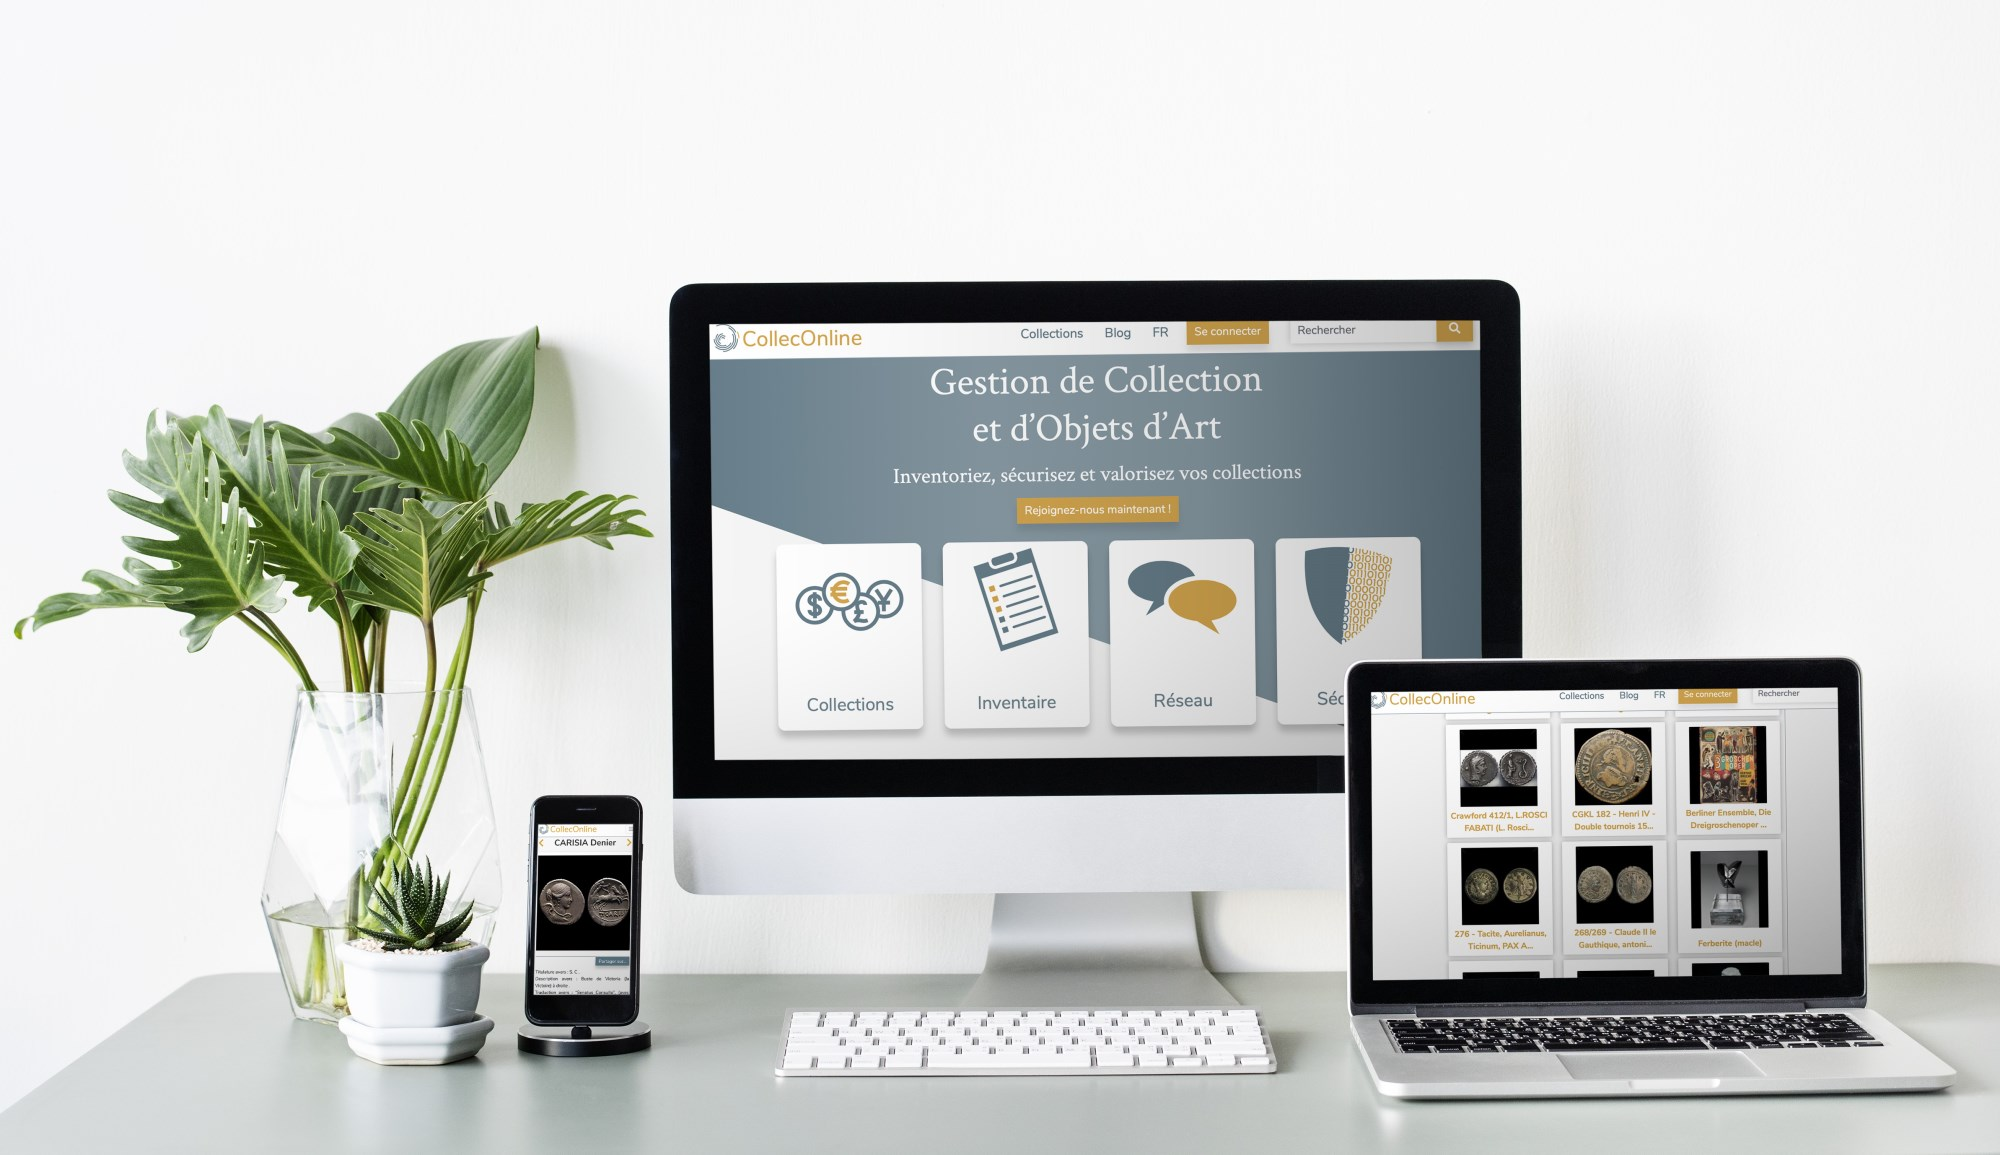 CollecOnline, la solution de gestion de collection, fait peau neuve ! Compatibilite-smartphone-tablette-ordinateur-bureau-fond-blanc